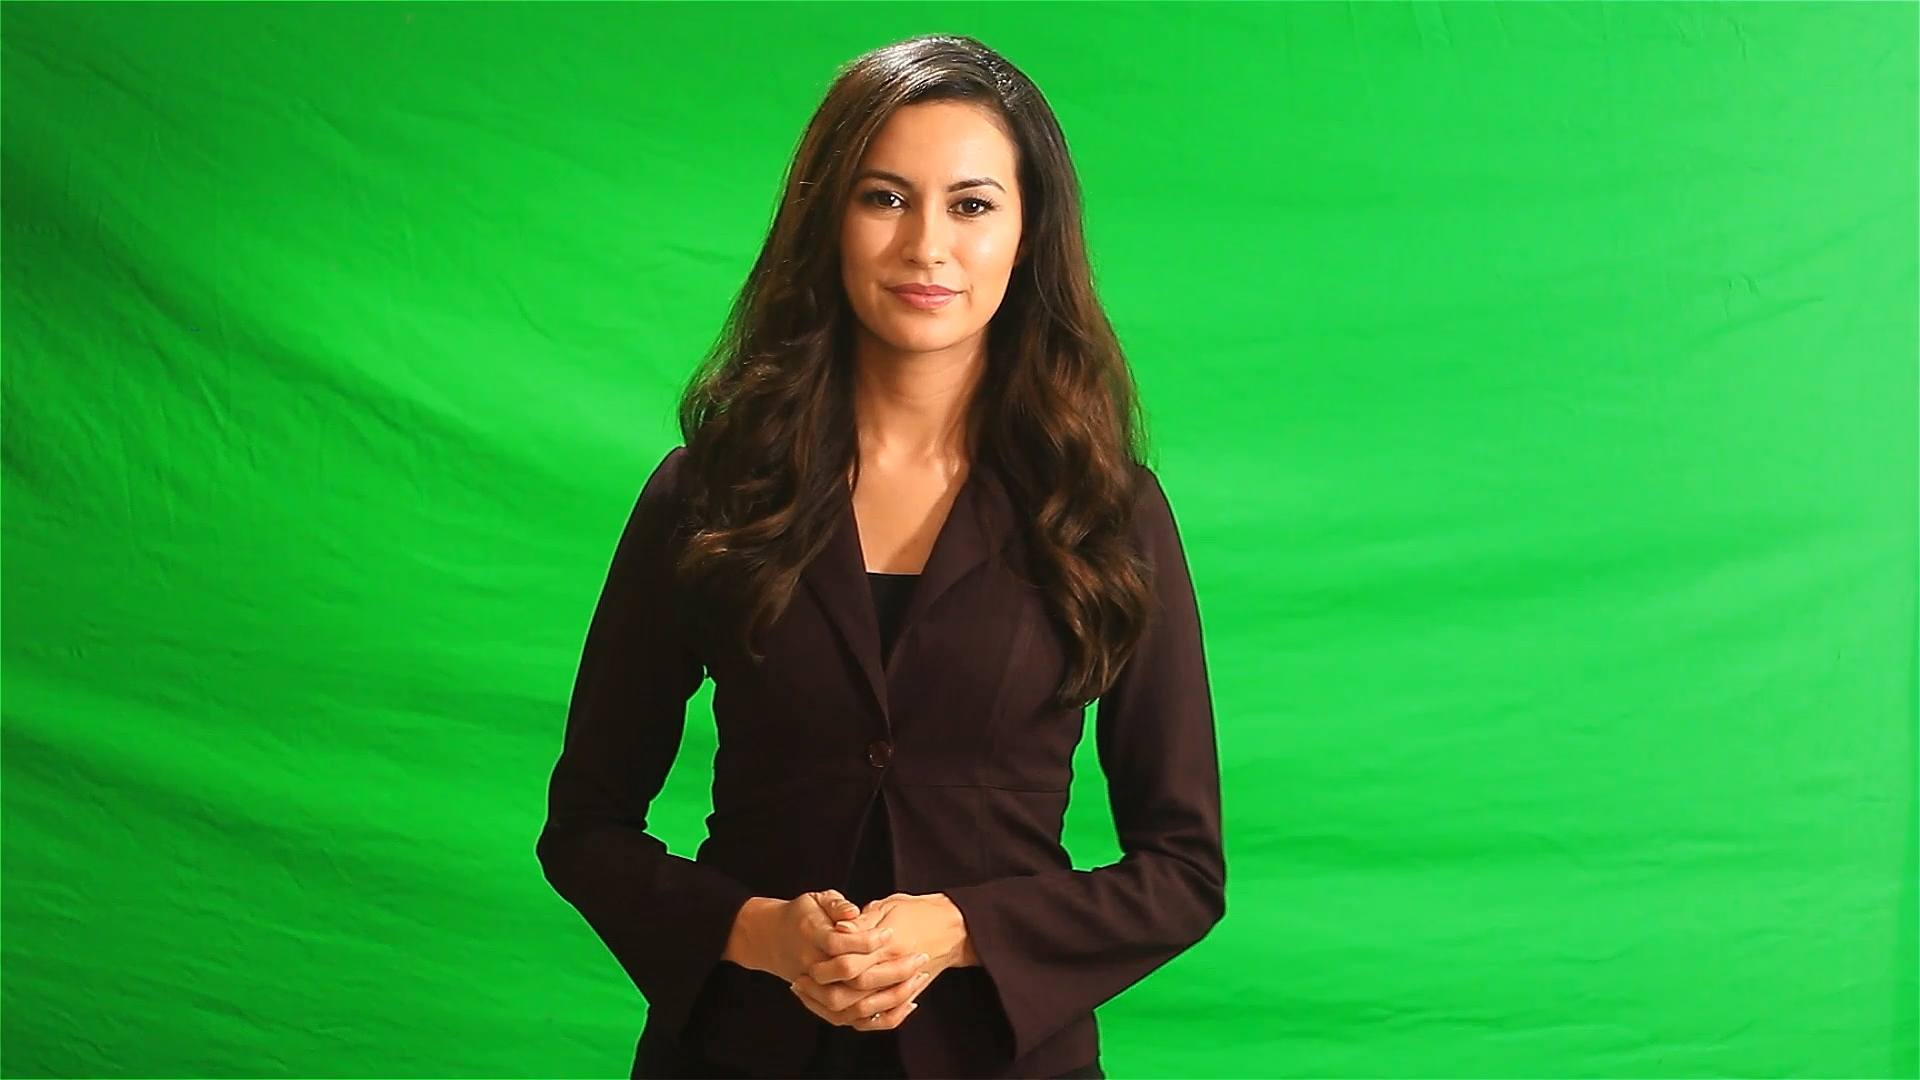 Dentist Green Screen Spokesperson